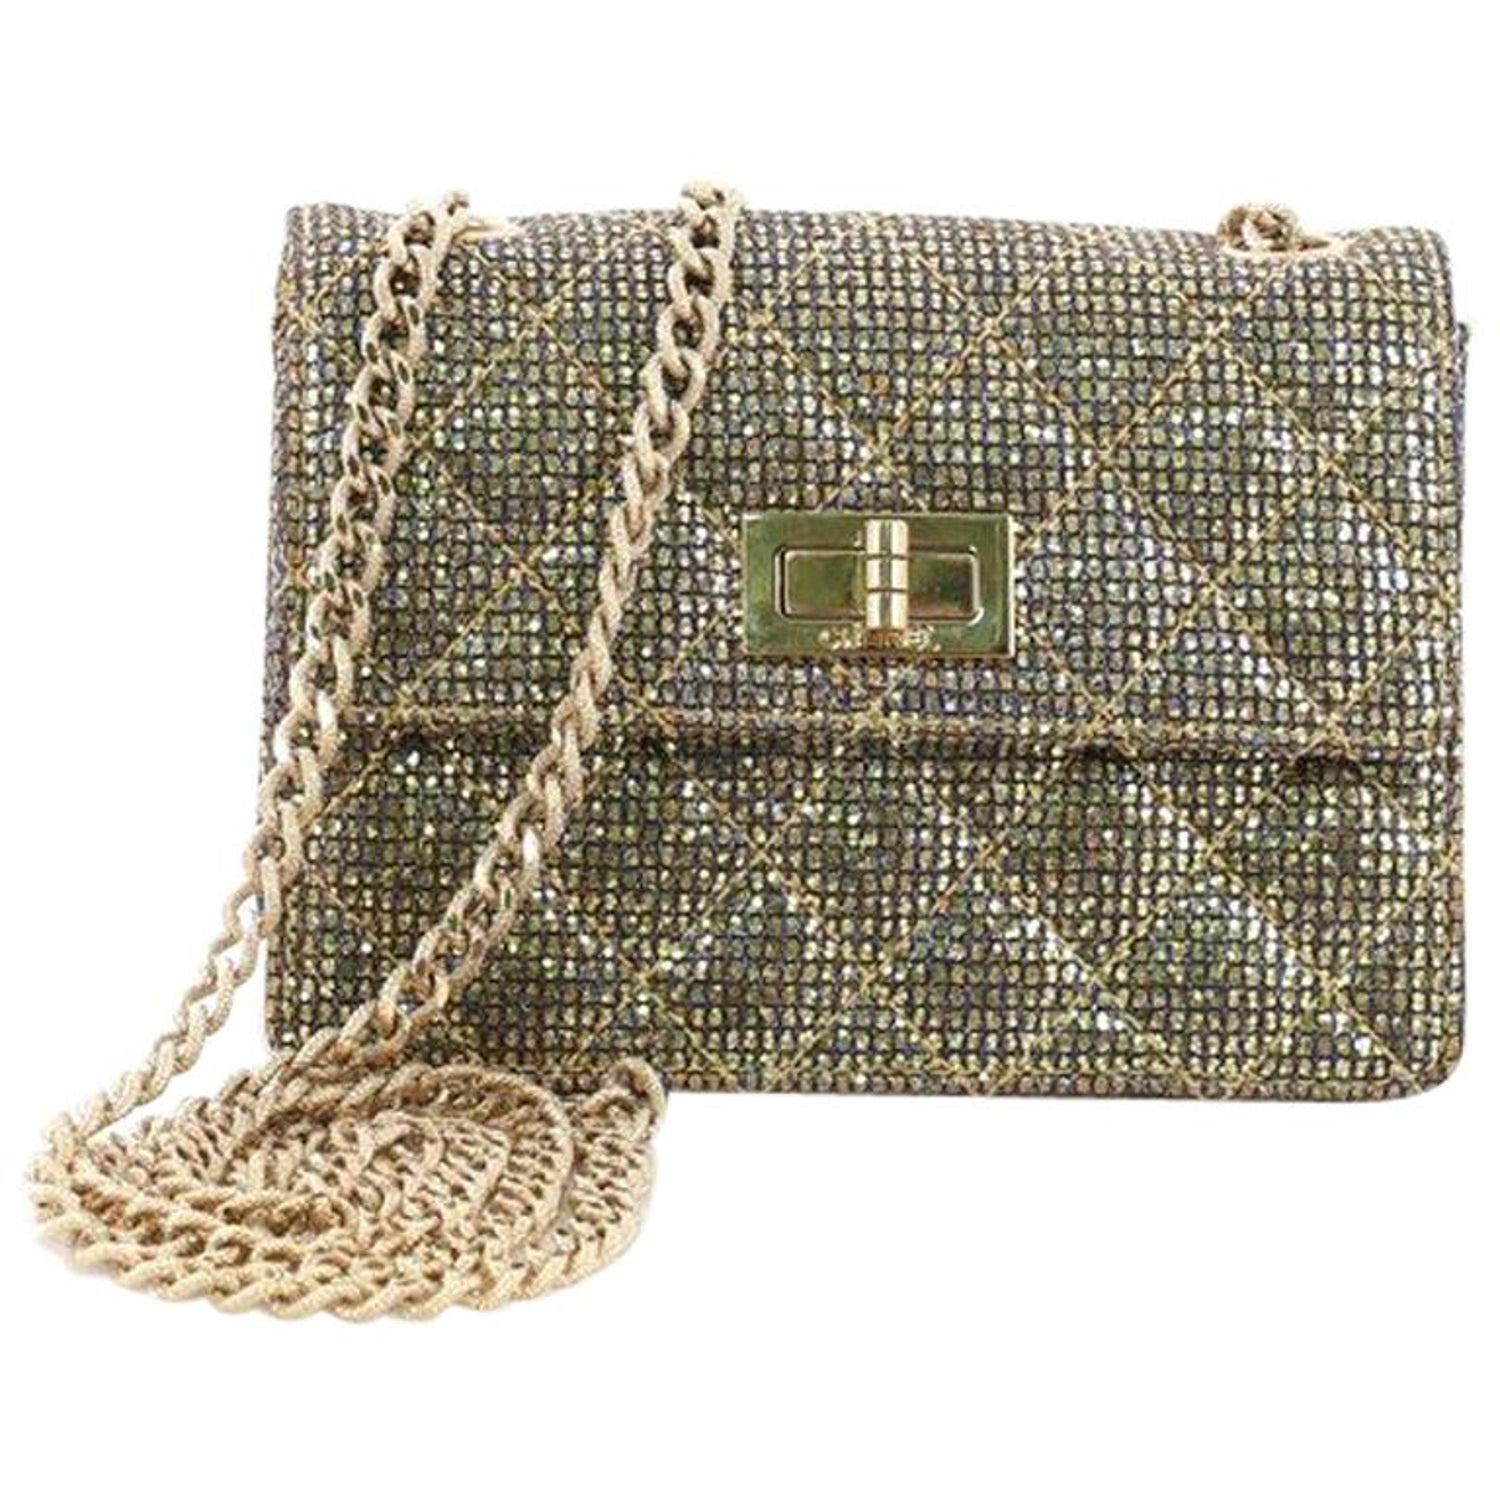 40c489b887b078 Chanel Mademoiselle Lock Crossbody Bag Quilted Glitter Fabric Mini at  1stdibs